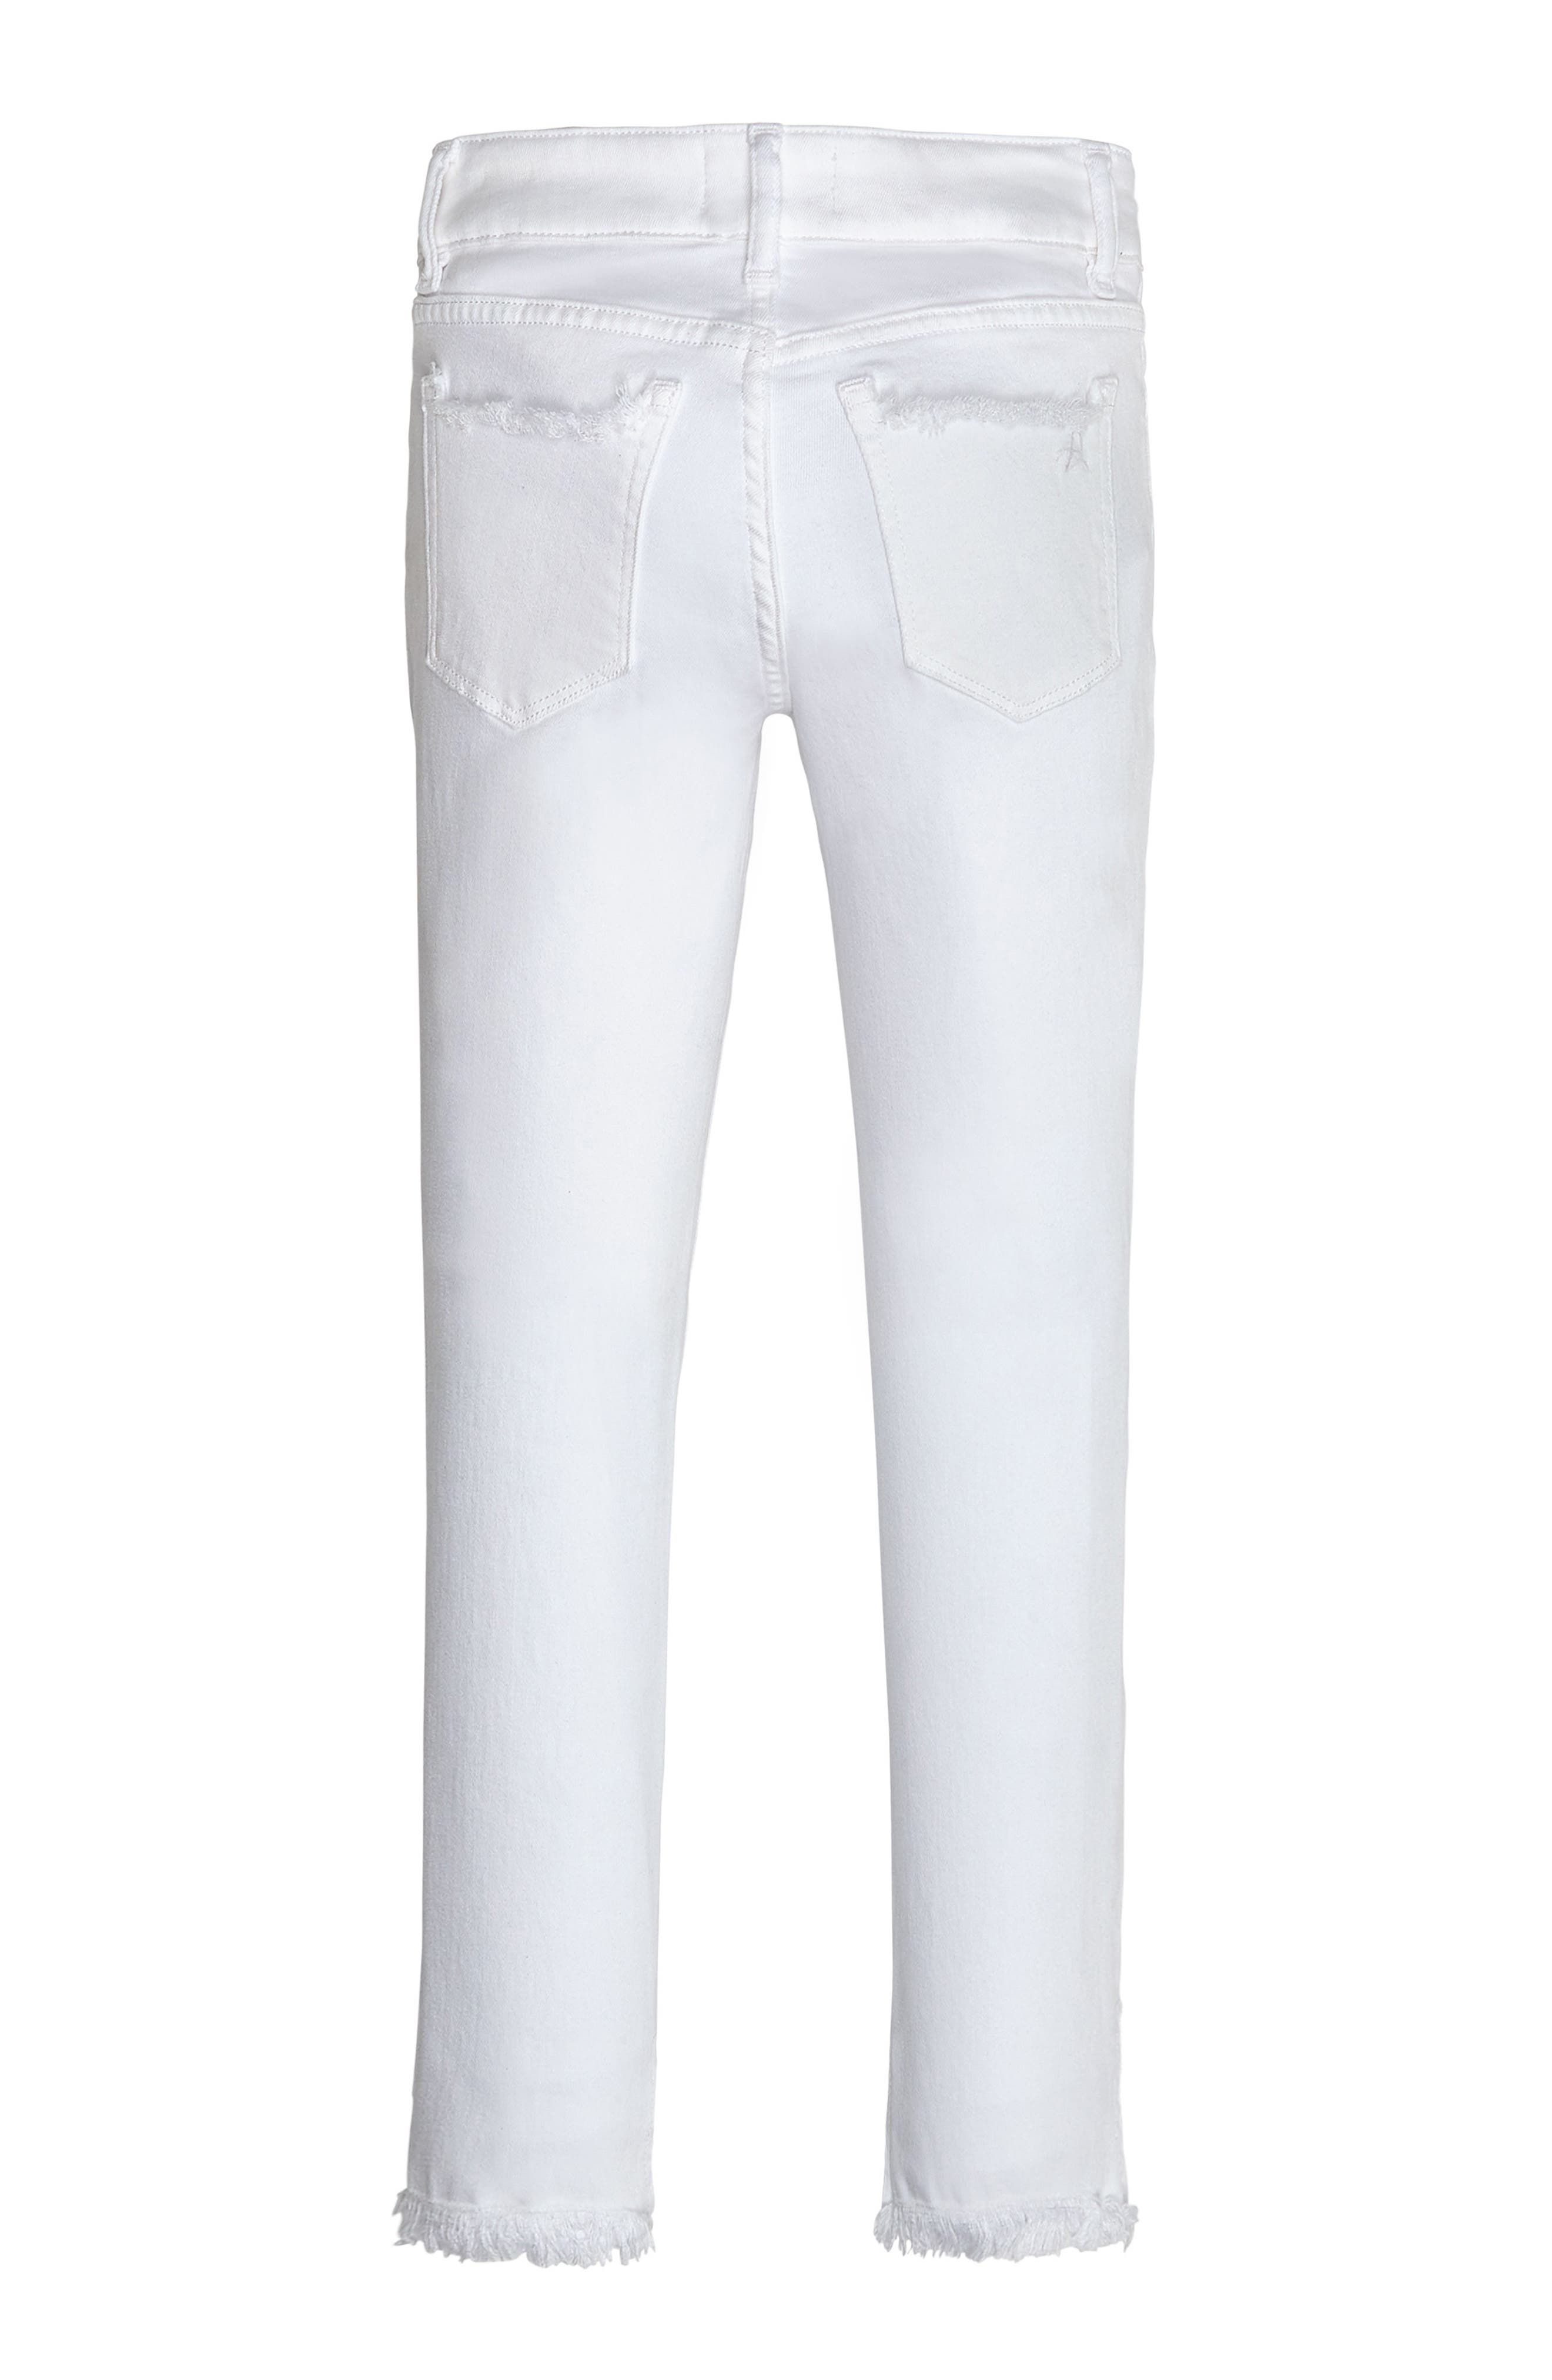 Distressed Skinny Jeans,                             Alternate thumbnail 2, color,                             400